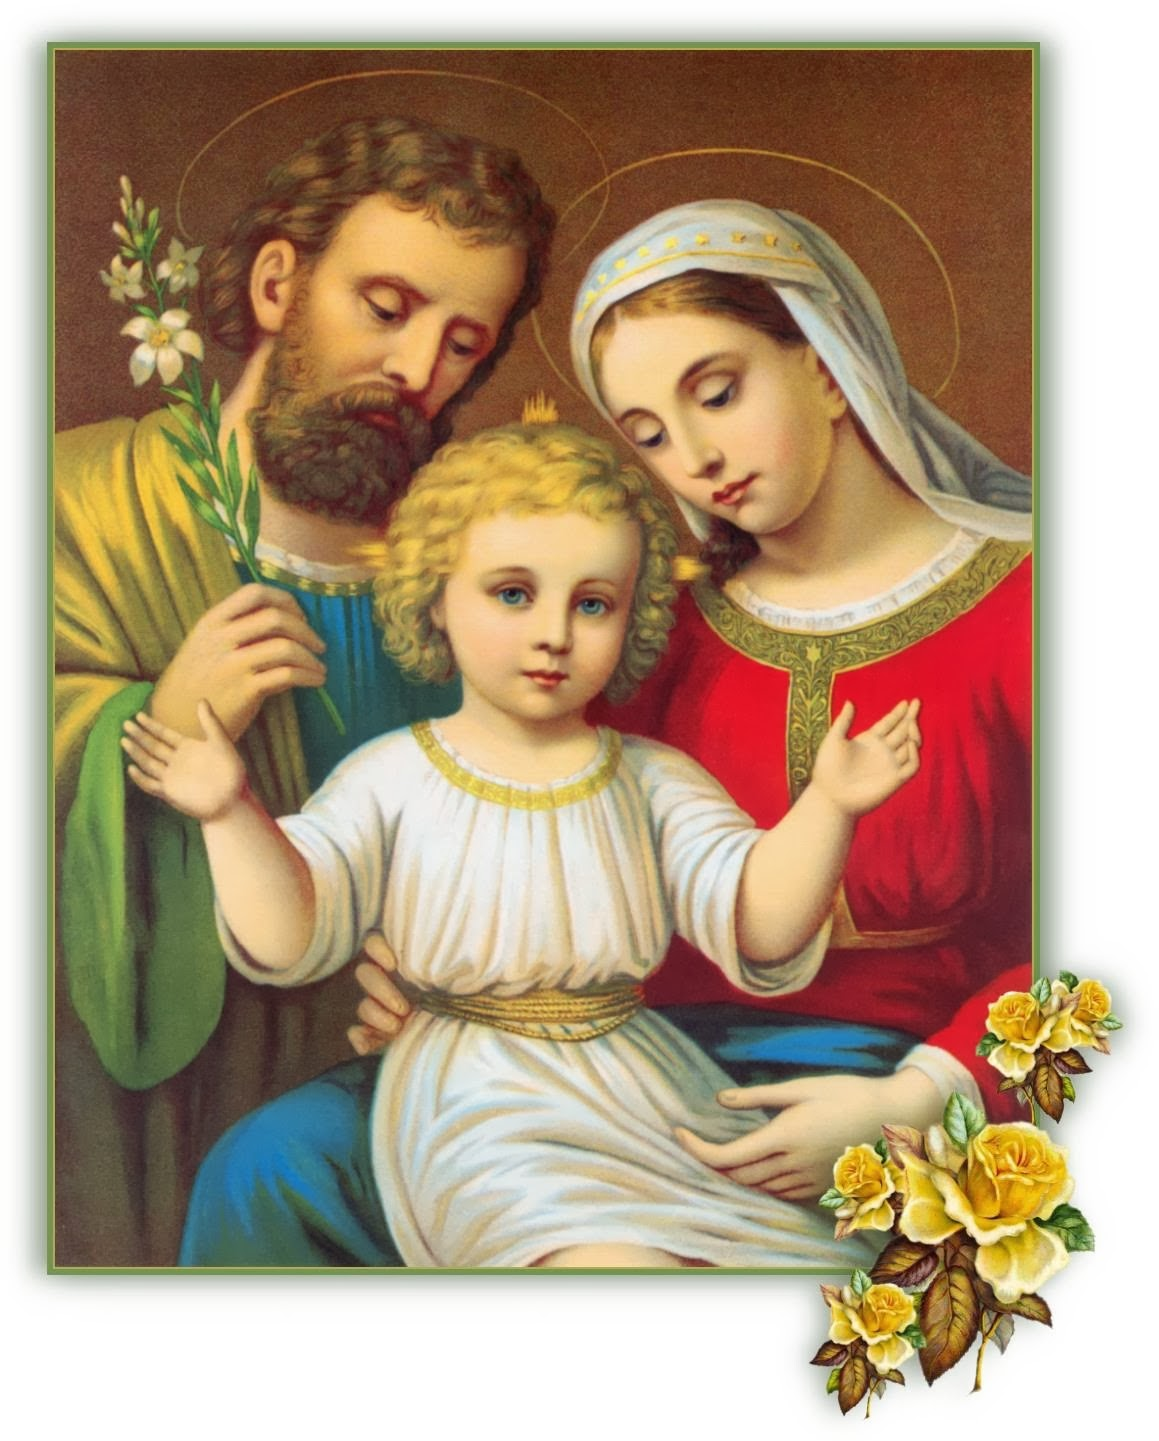 Feast Of The Holy Family D 237 A De La Sagrada Familia